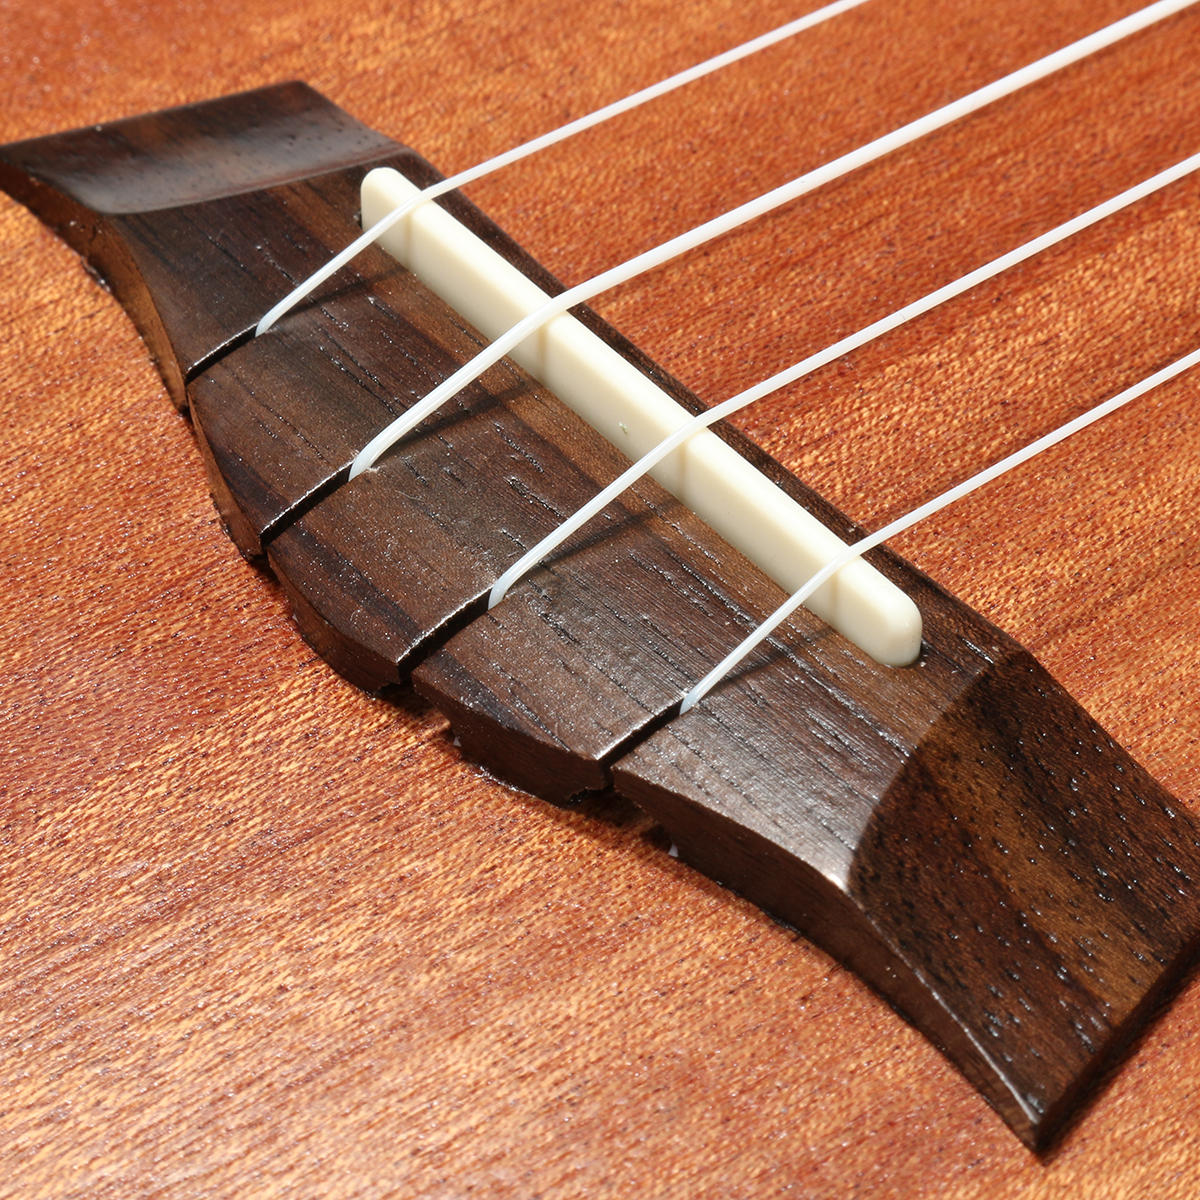 21 Inch 4 Strings 15 Frets Wood Color Mahogany Ukulele Musical Instrument With Guitar picks/Rope - 9